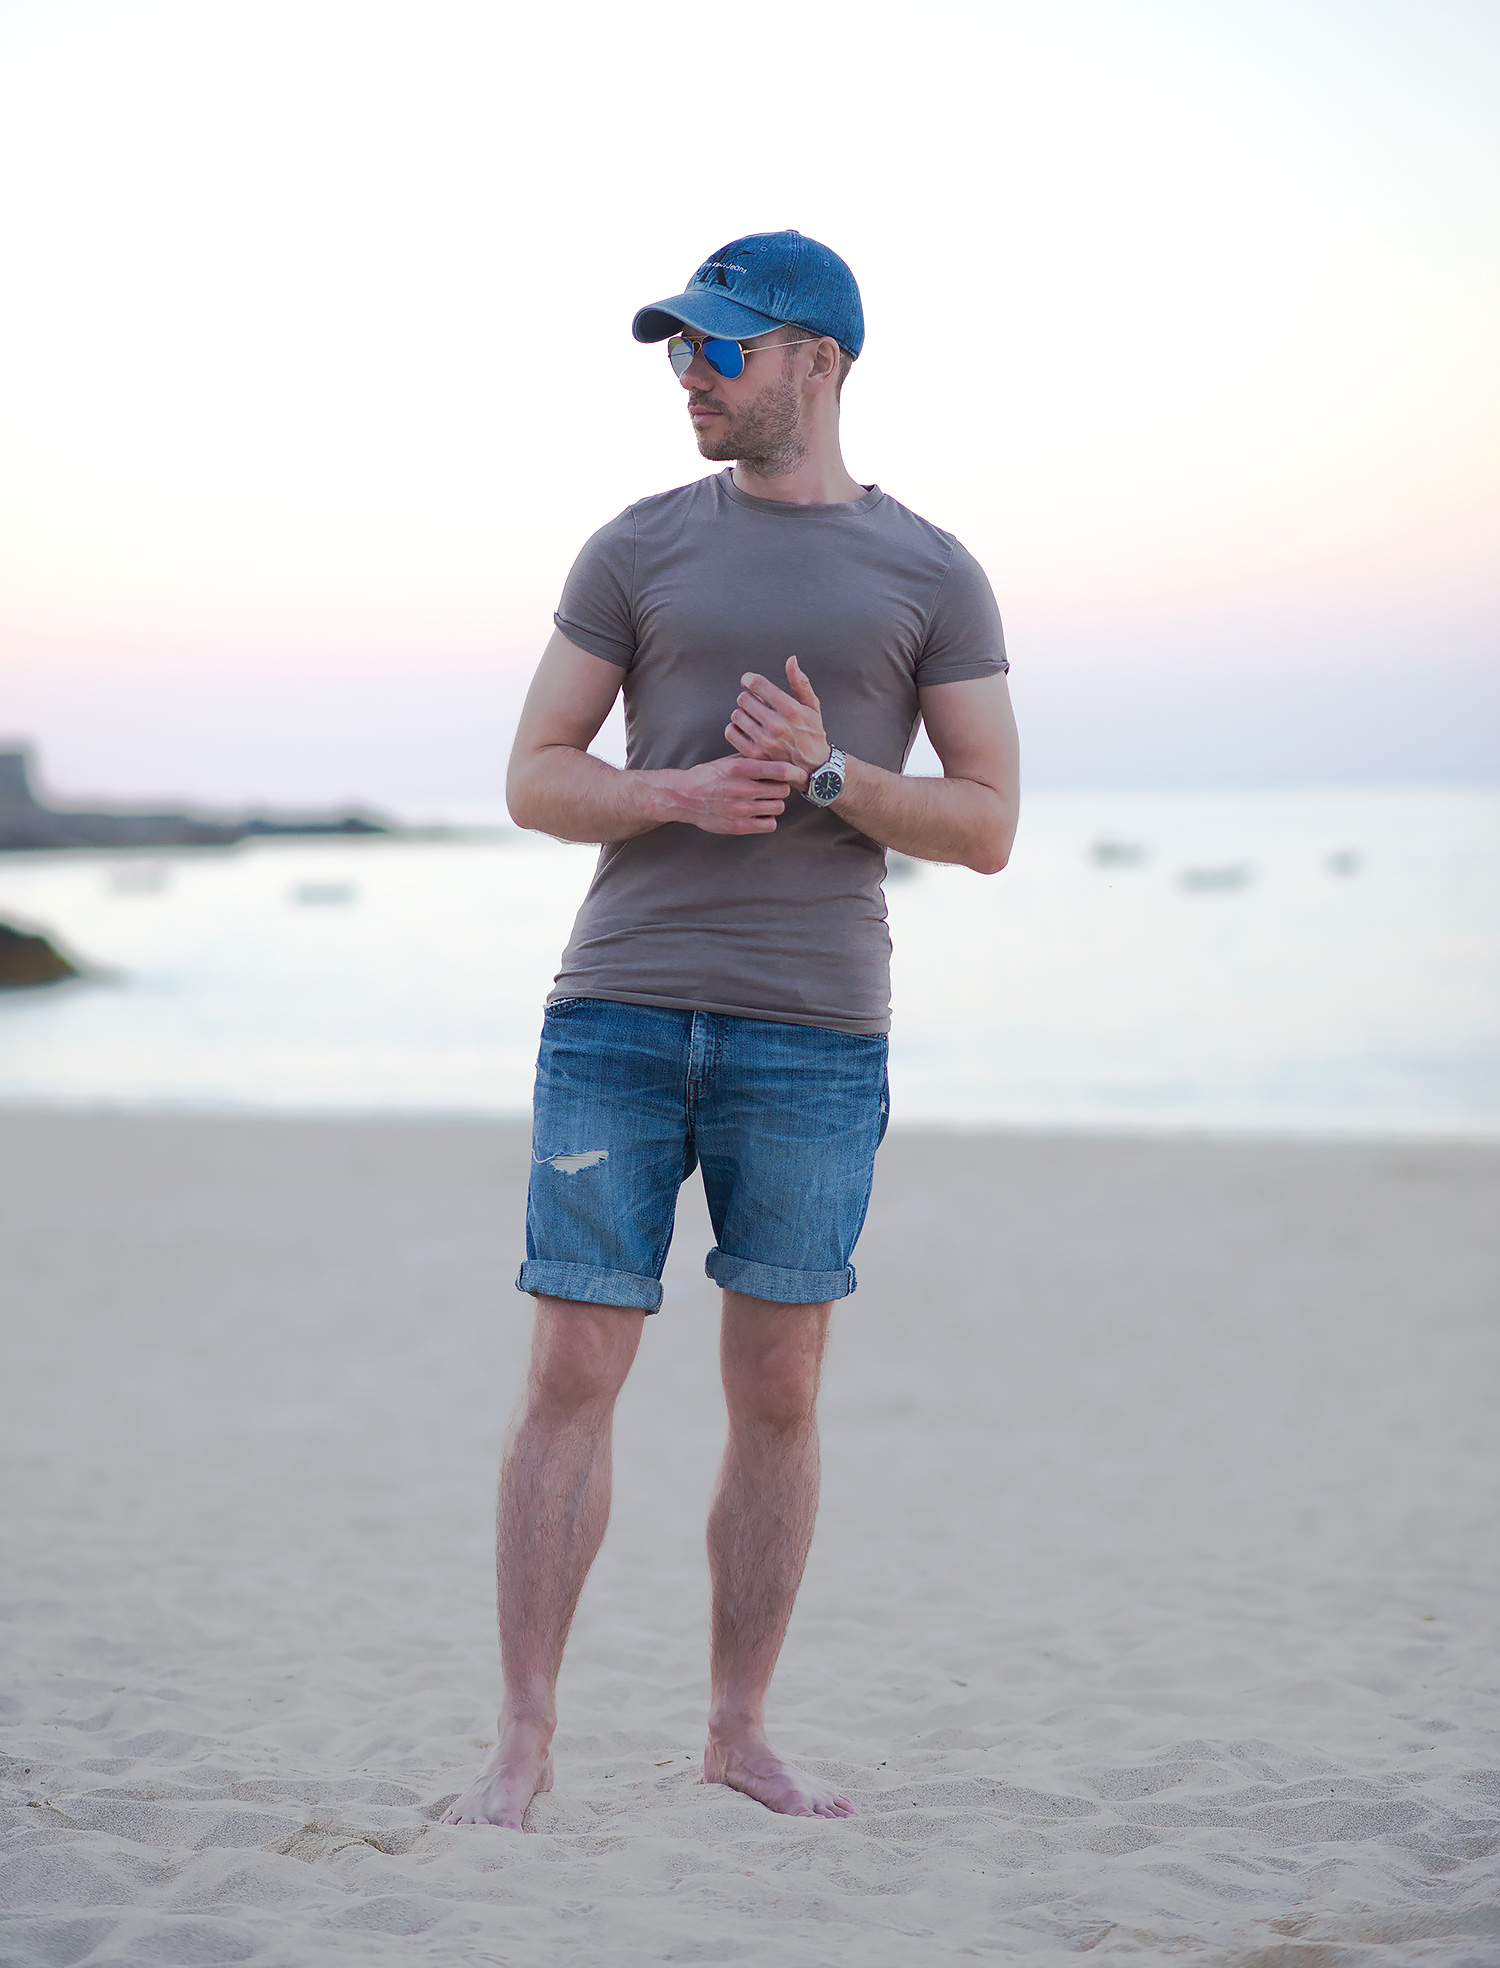 Levis Denim Shorts At Portminster Beach Outfit Your Average Guy